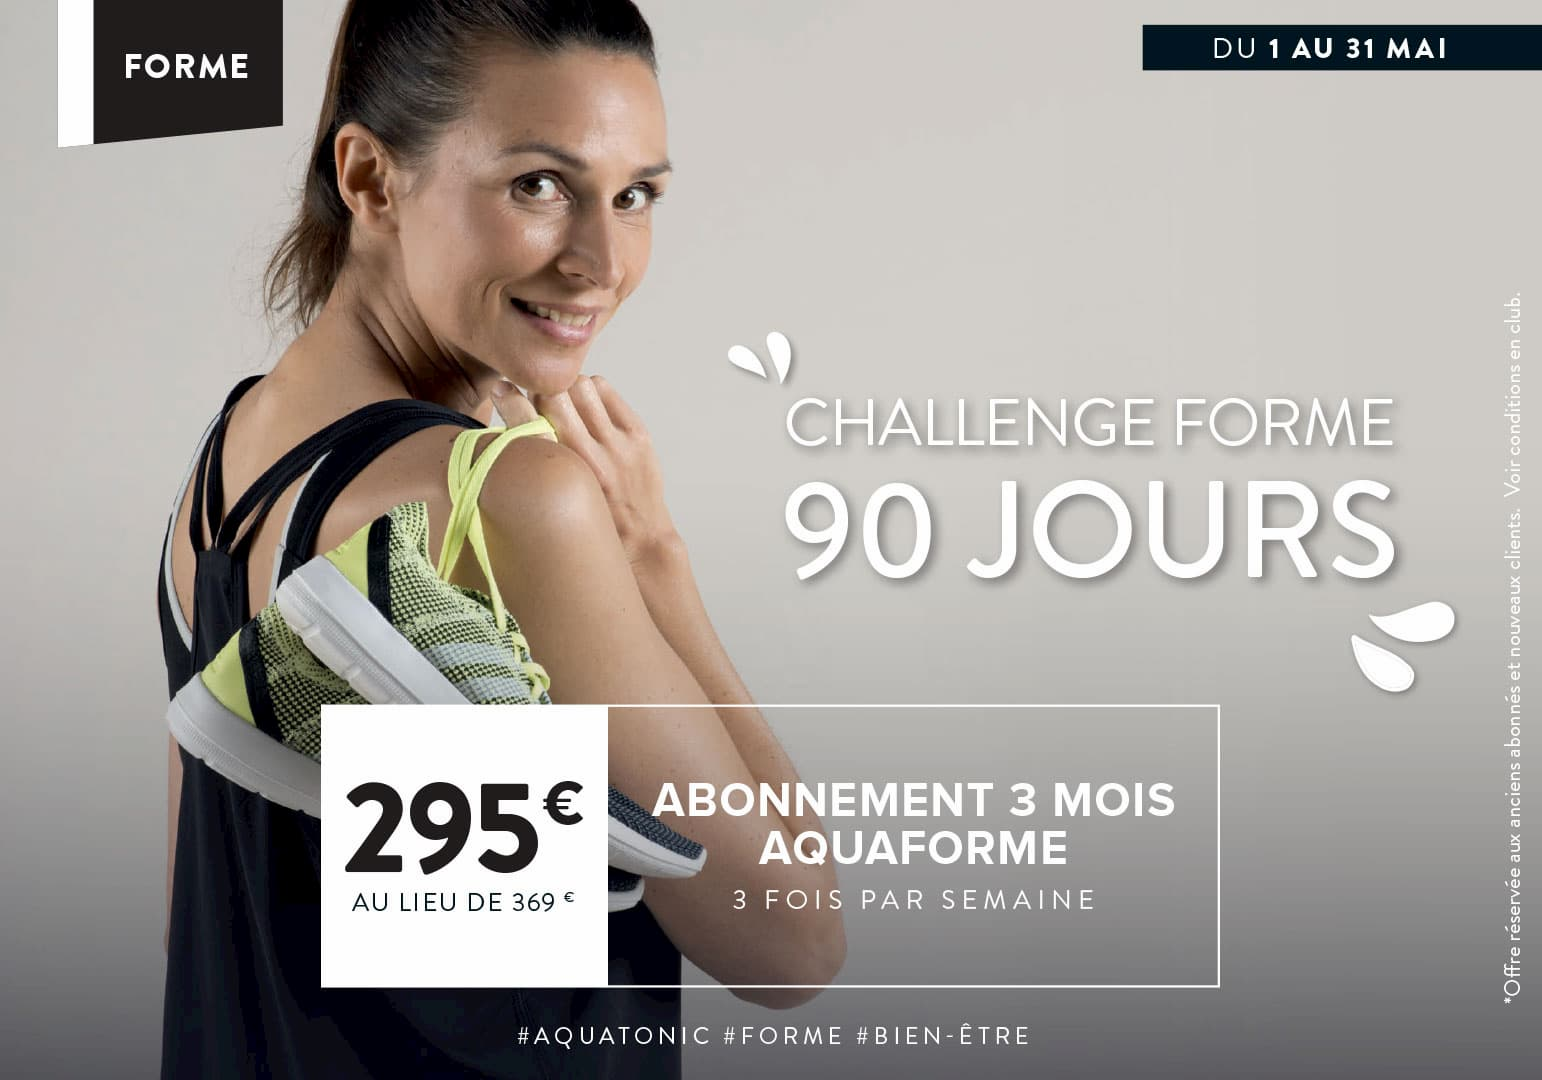 Challenge Forme 90 jours